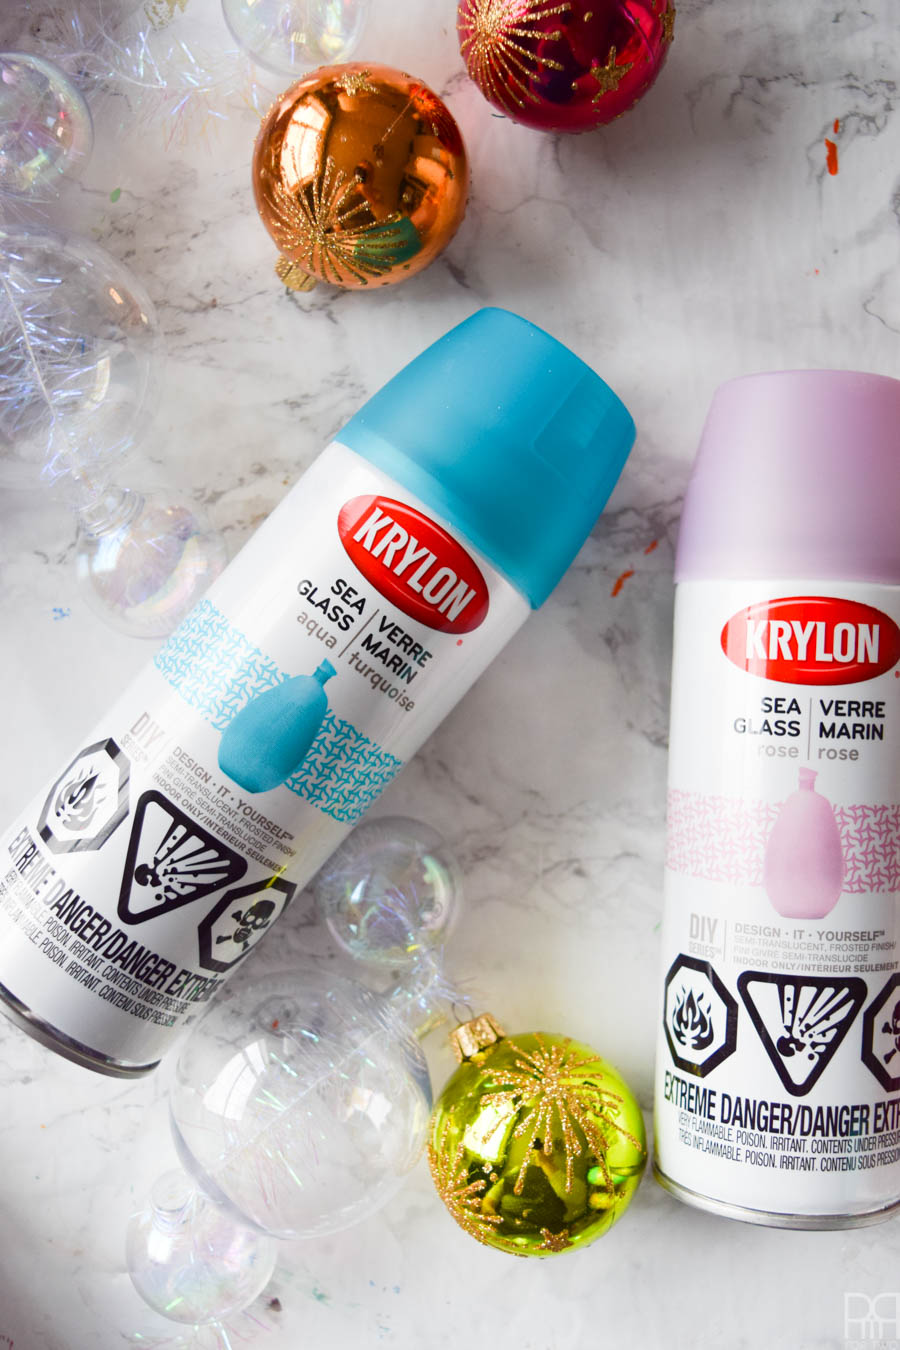 Spend an afternoon creating the perfect Christmas garland using old ornaments and some Krylon spray paint for a beautifully dusted look. Unicorns do exist y'all, and this garland is proof. #krylon #spraypaint